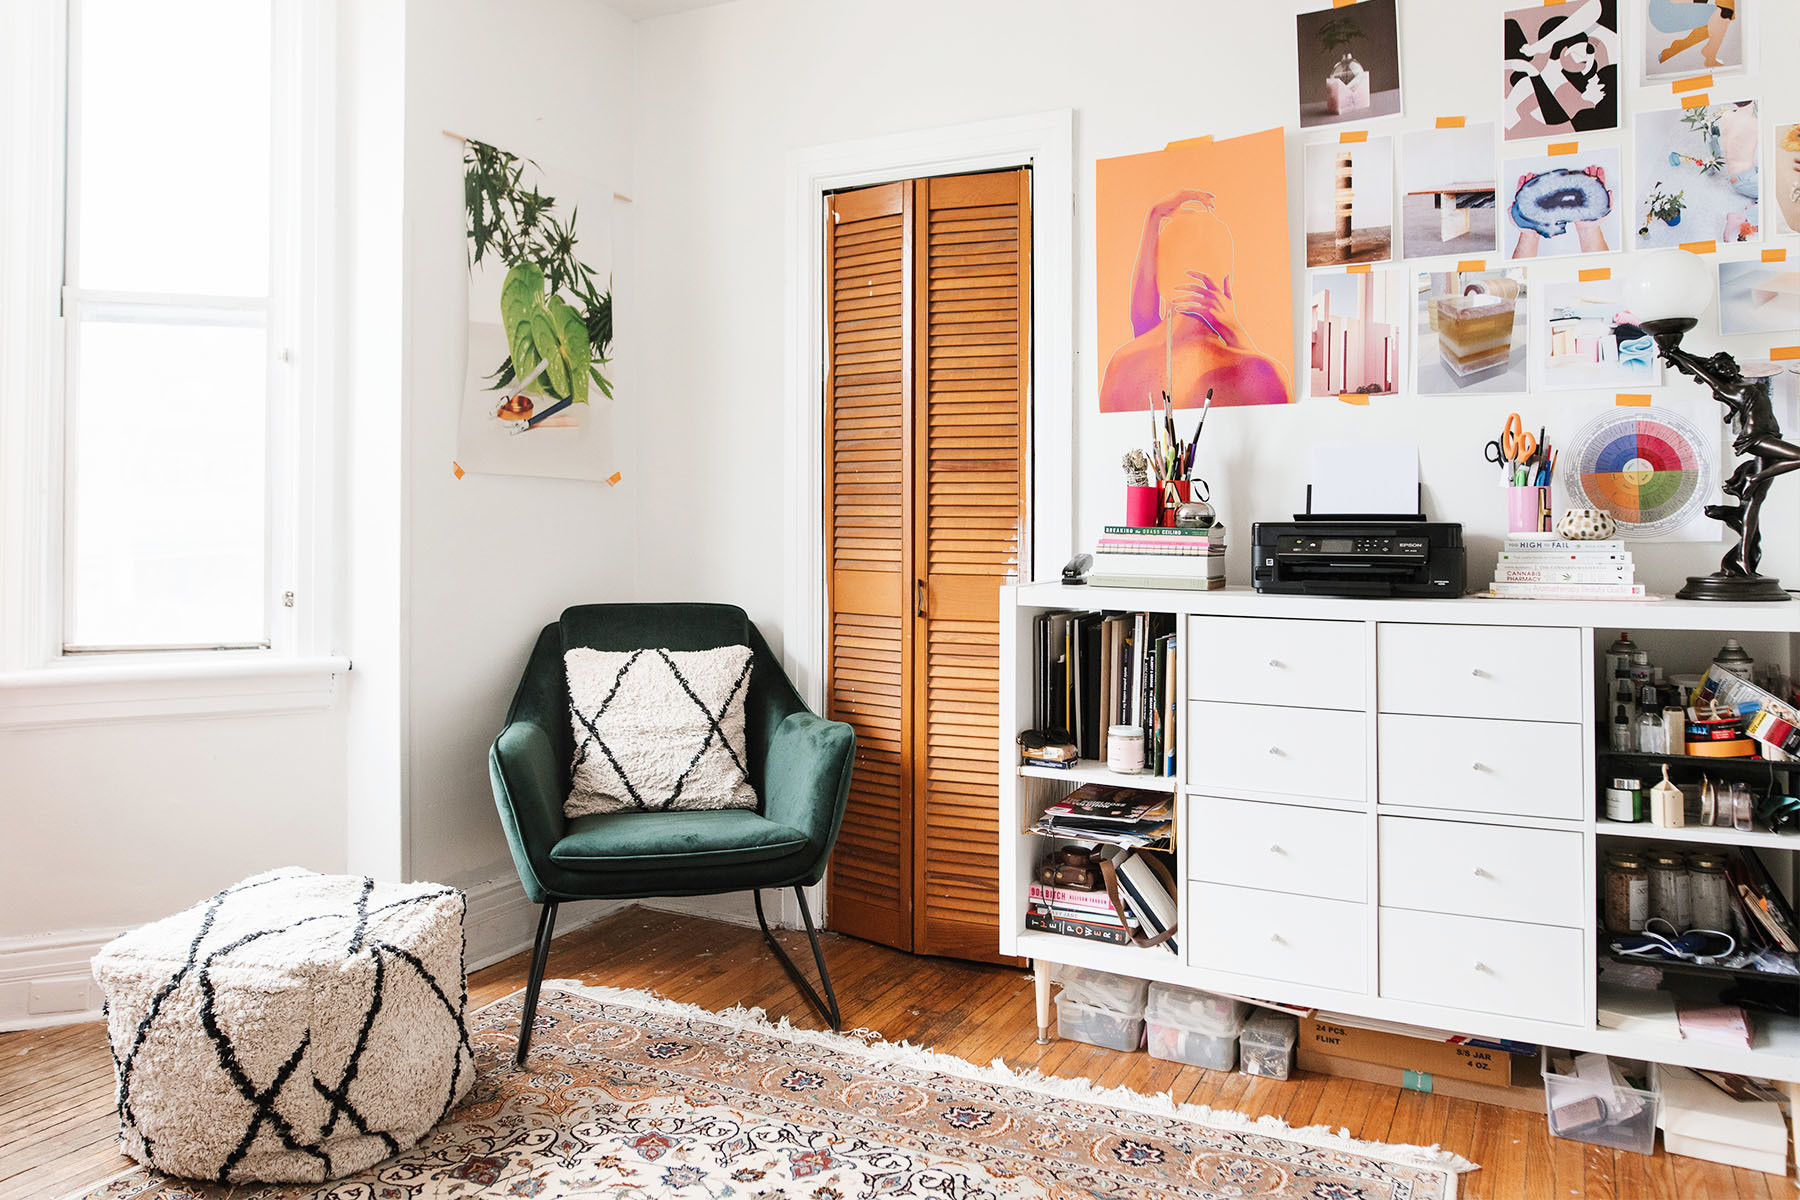 Sackville & Co.co-founder Hayley Dineen's Toronto home boasts a light, bright workroom and studio.Structube Armchair | Vintage Area Rug |Structube Pillow |Structube Pouf |IKEA Shelves |Duncan Foy Print.